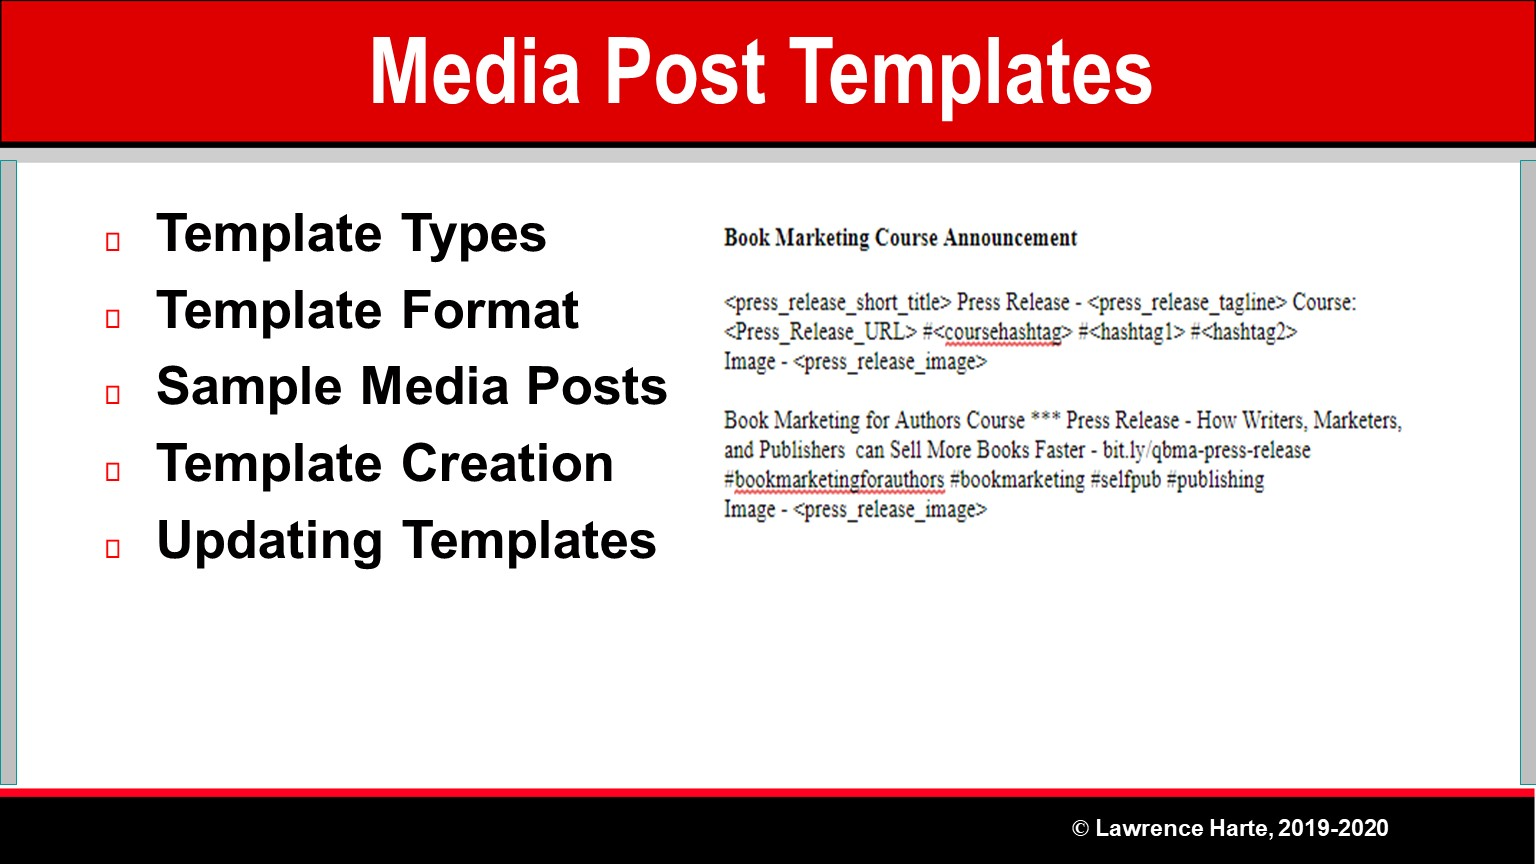 Book Pre-Launch Marketing Media Post Templates